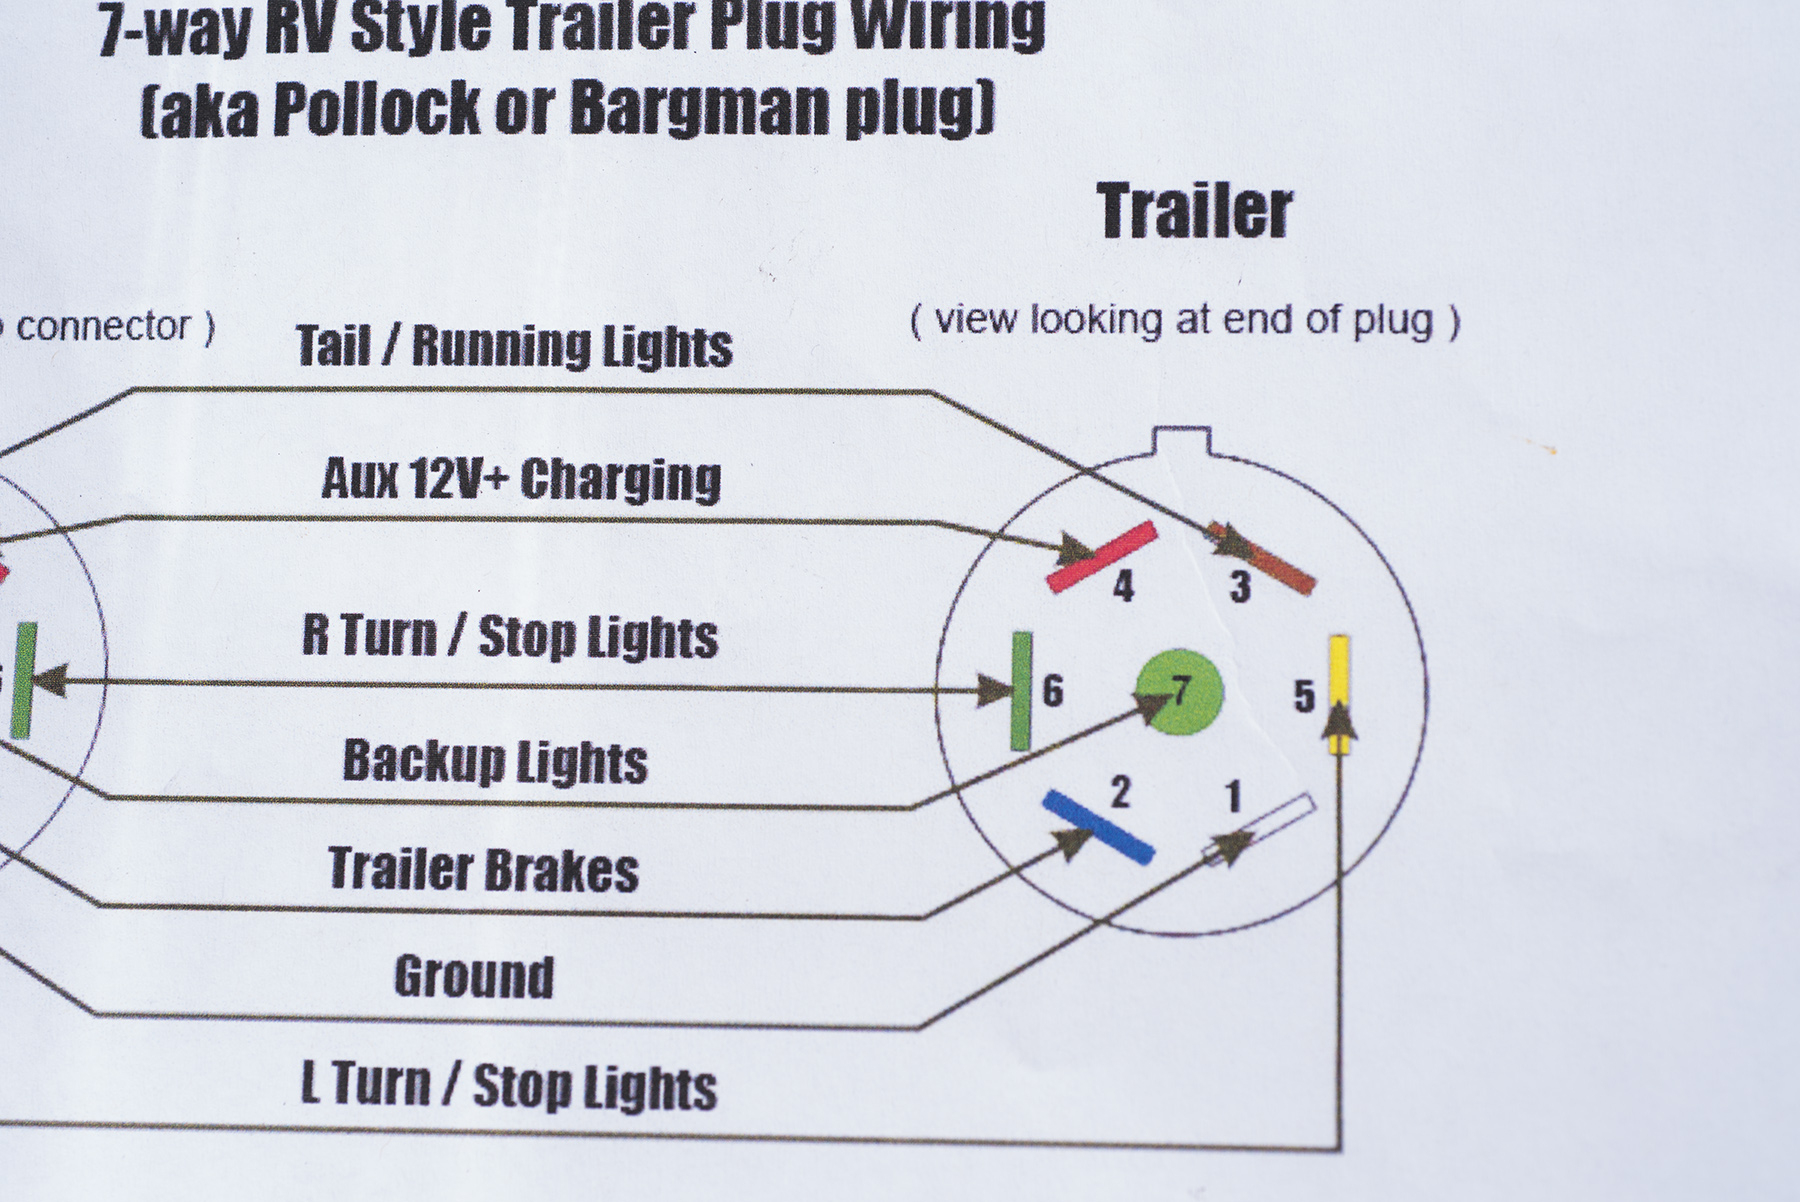 Dodge 7 Pin Trailer Wiring Diagram | Manual E-Books - 2017 Chevy Silverado Trailer Wiring Diagram